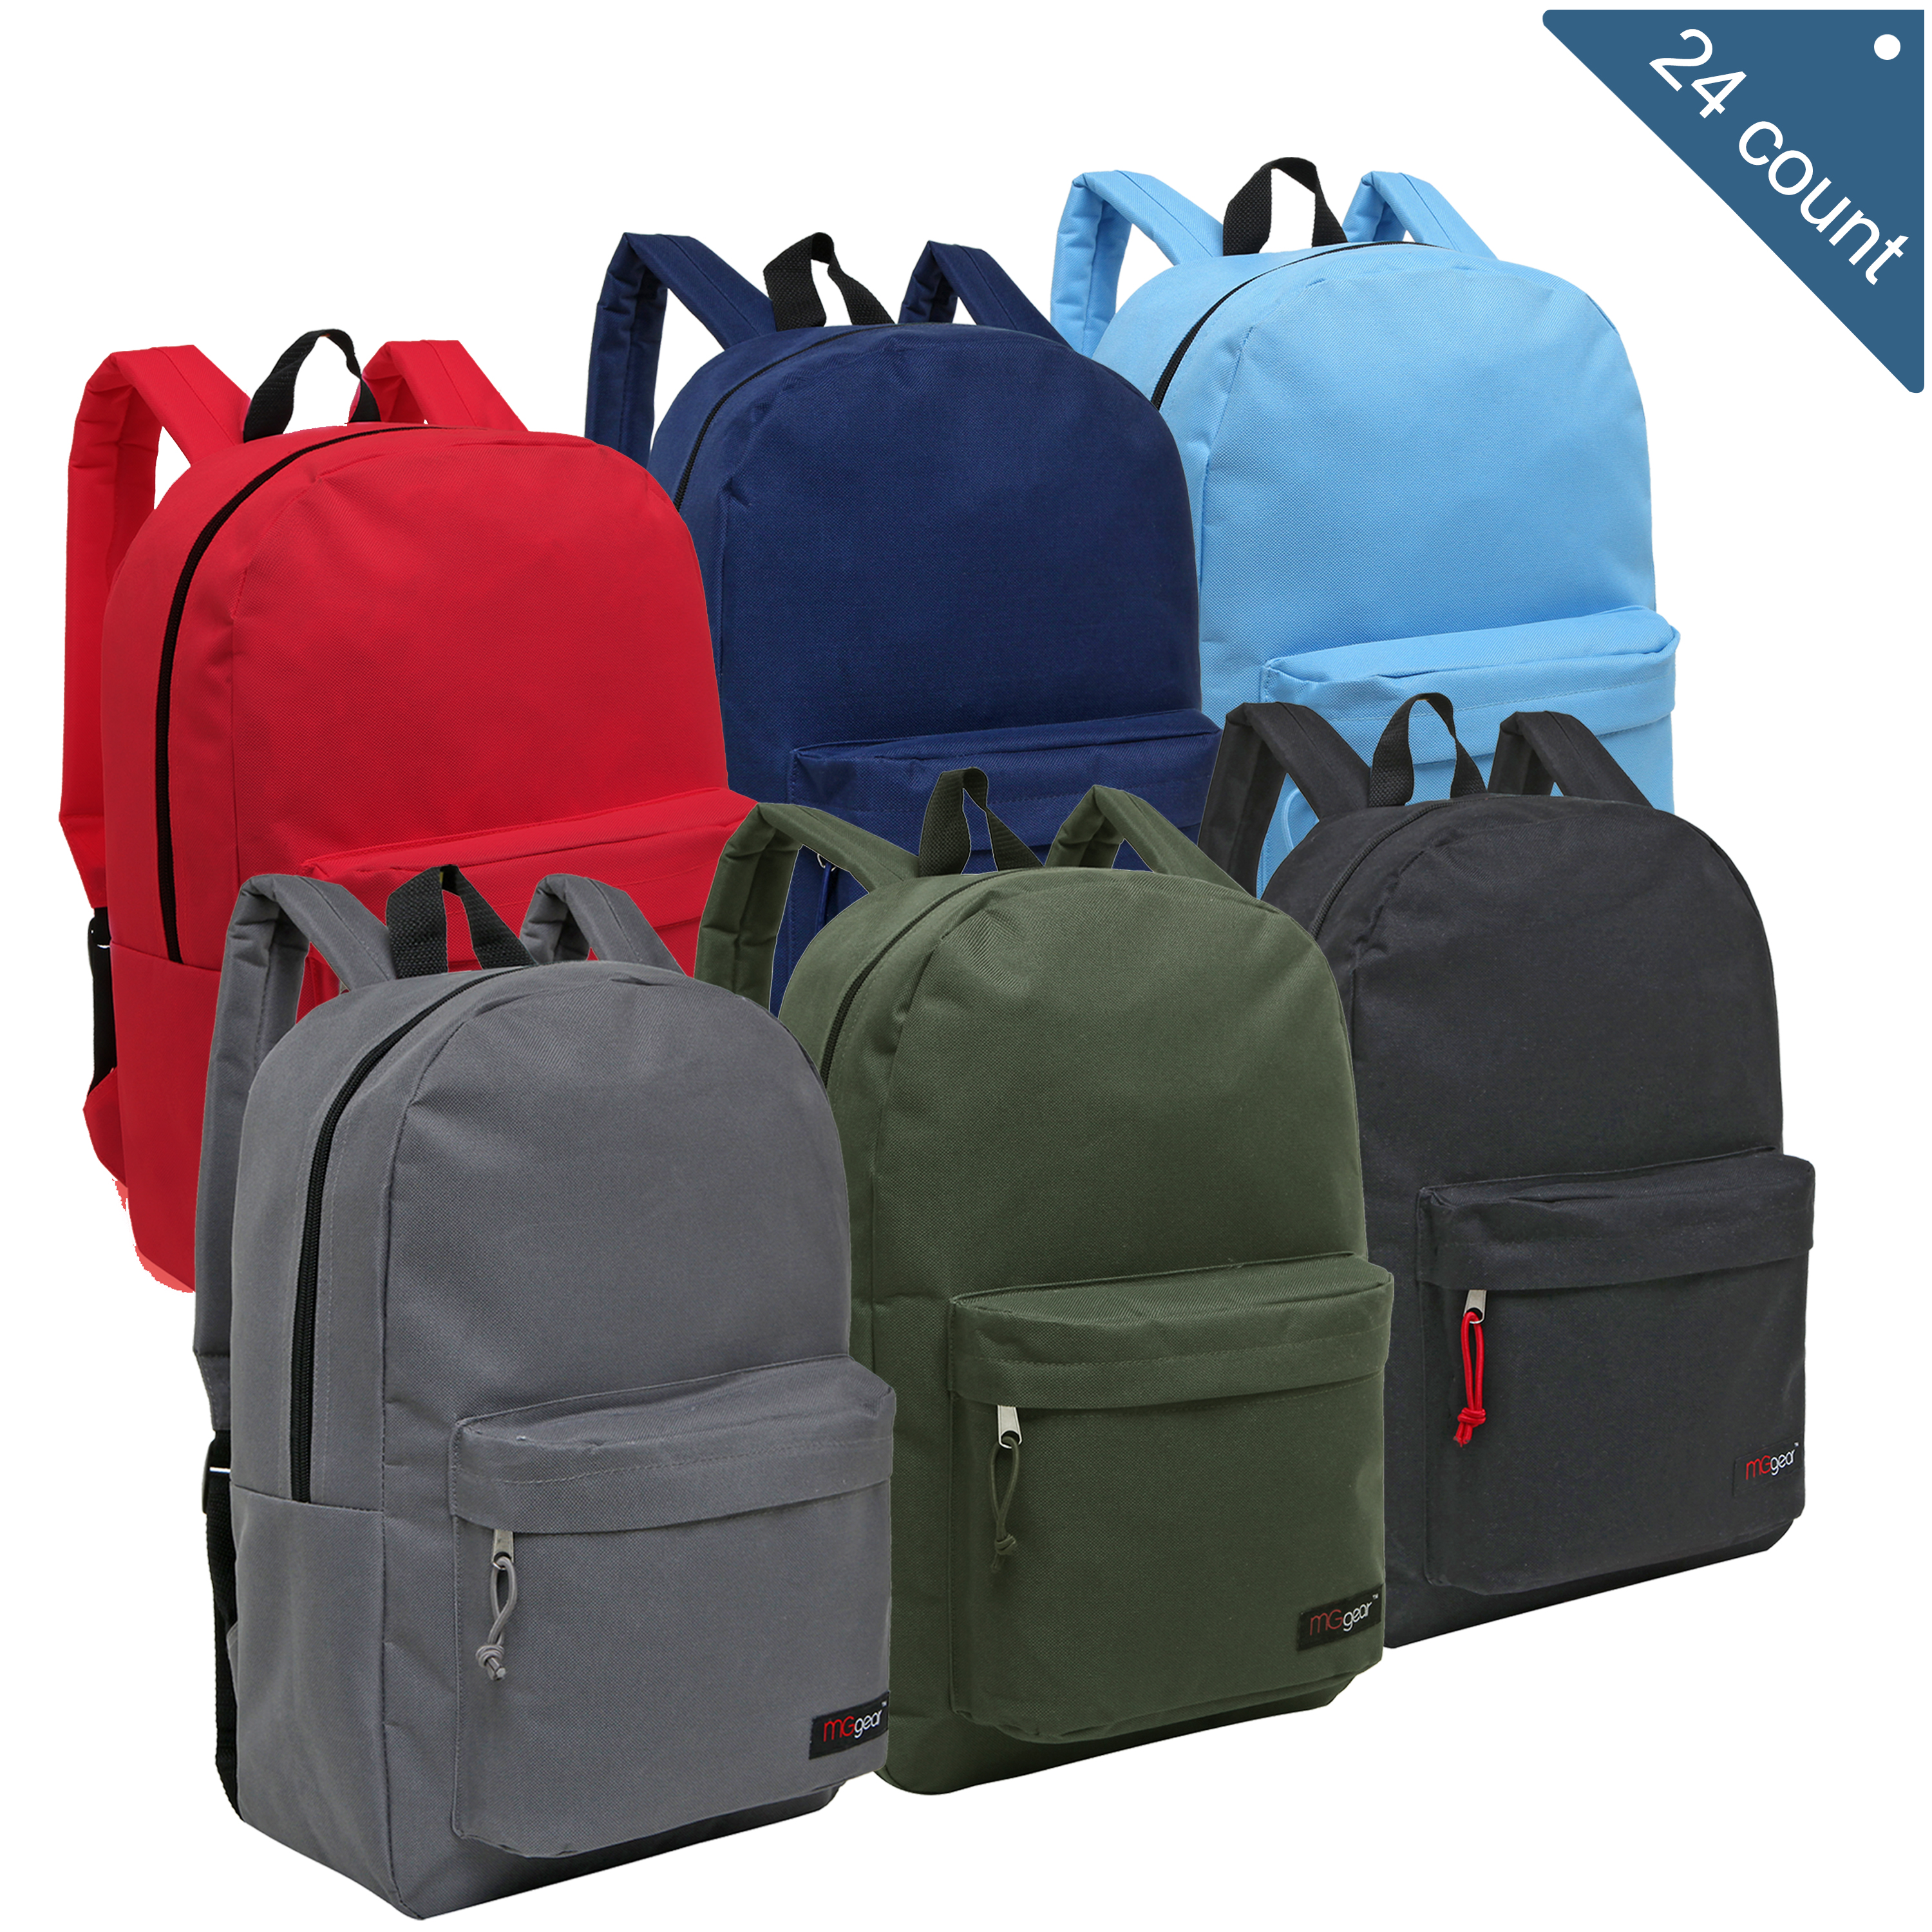 MGgear 16.5 inch Basic Elementary School Kids Wholesale Backpacks, Primary Color Mix